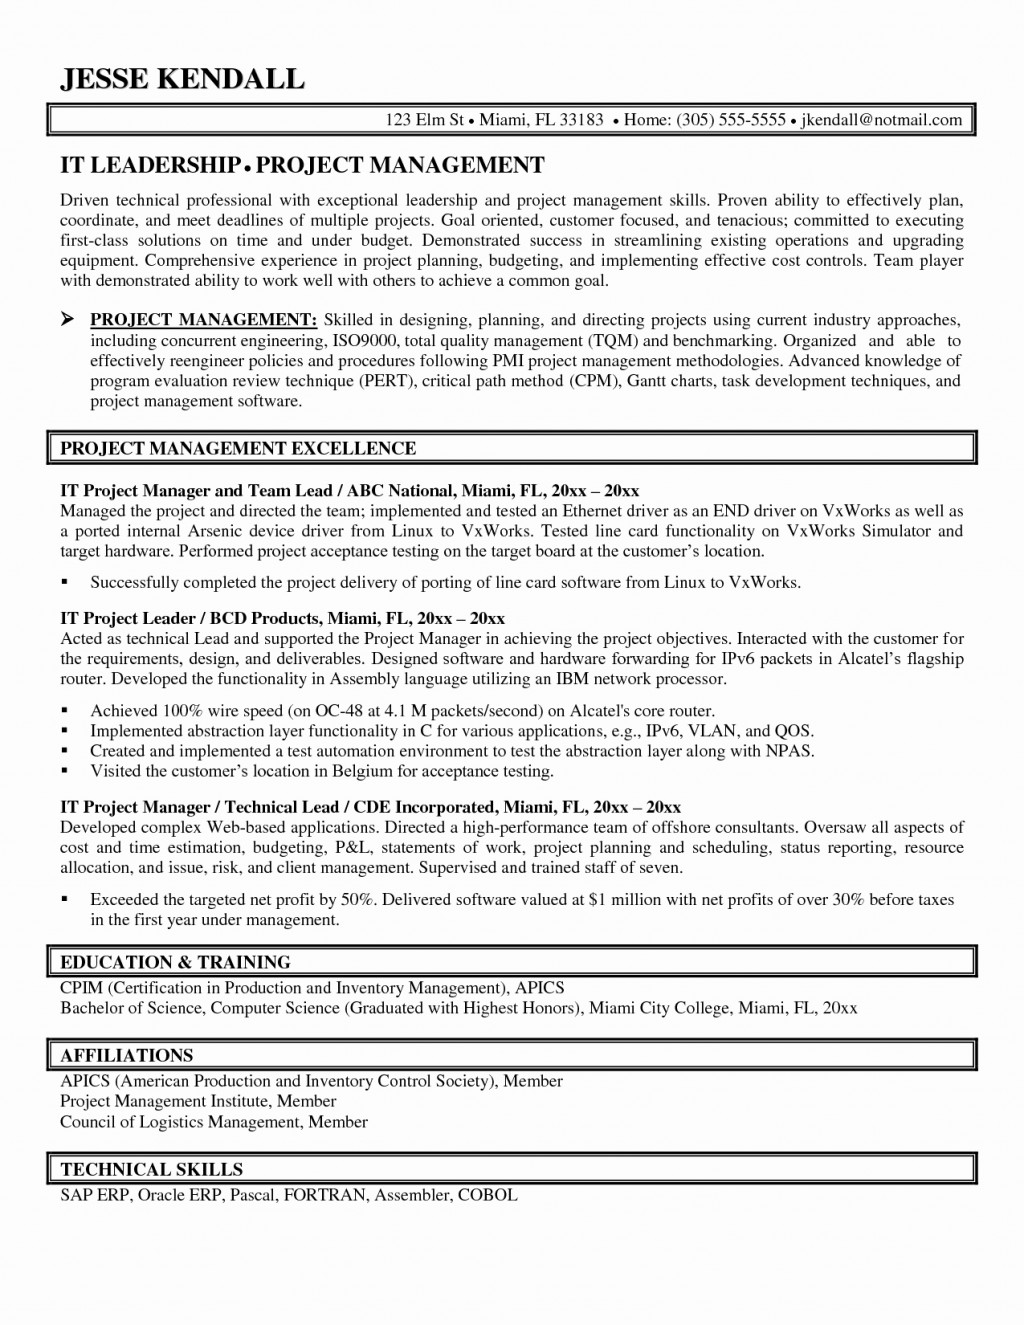 013 Leadership Goals And Objectives Examples The Best Of Shoes Writing An Informative Essay About Making Sacrifices Quizlet Awesome Sample Resume Forhnicalad Prewriting Activity Example Breathtaking Lead Exposure Lex Competition Large